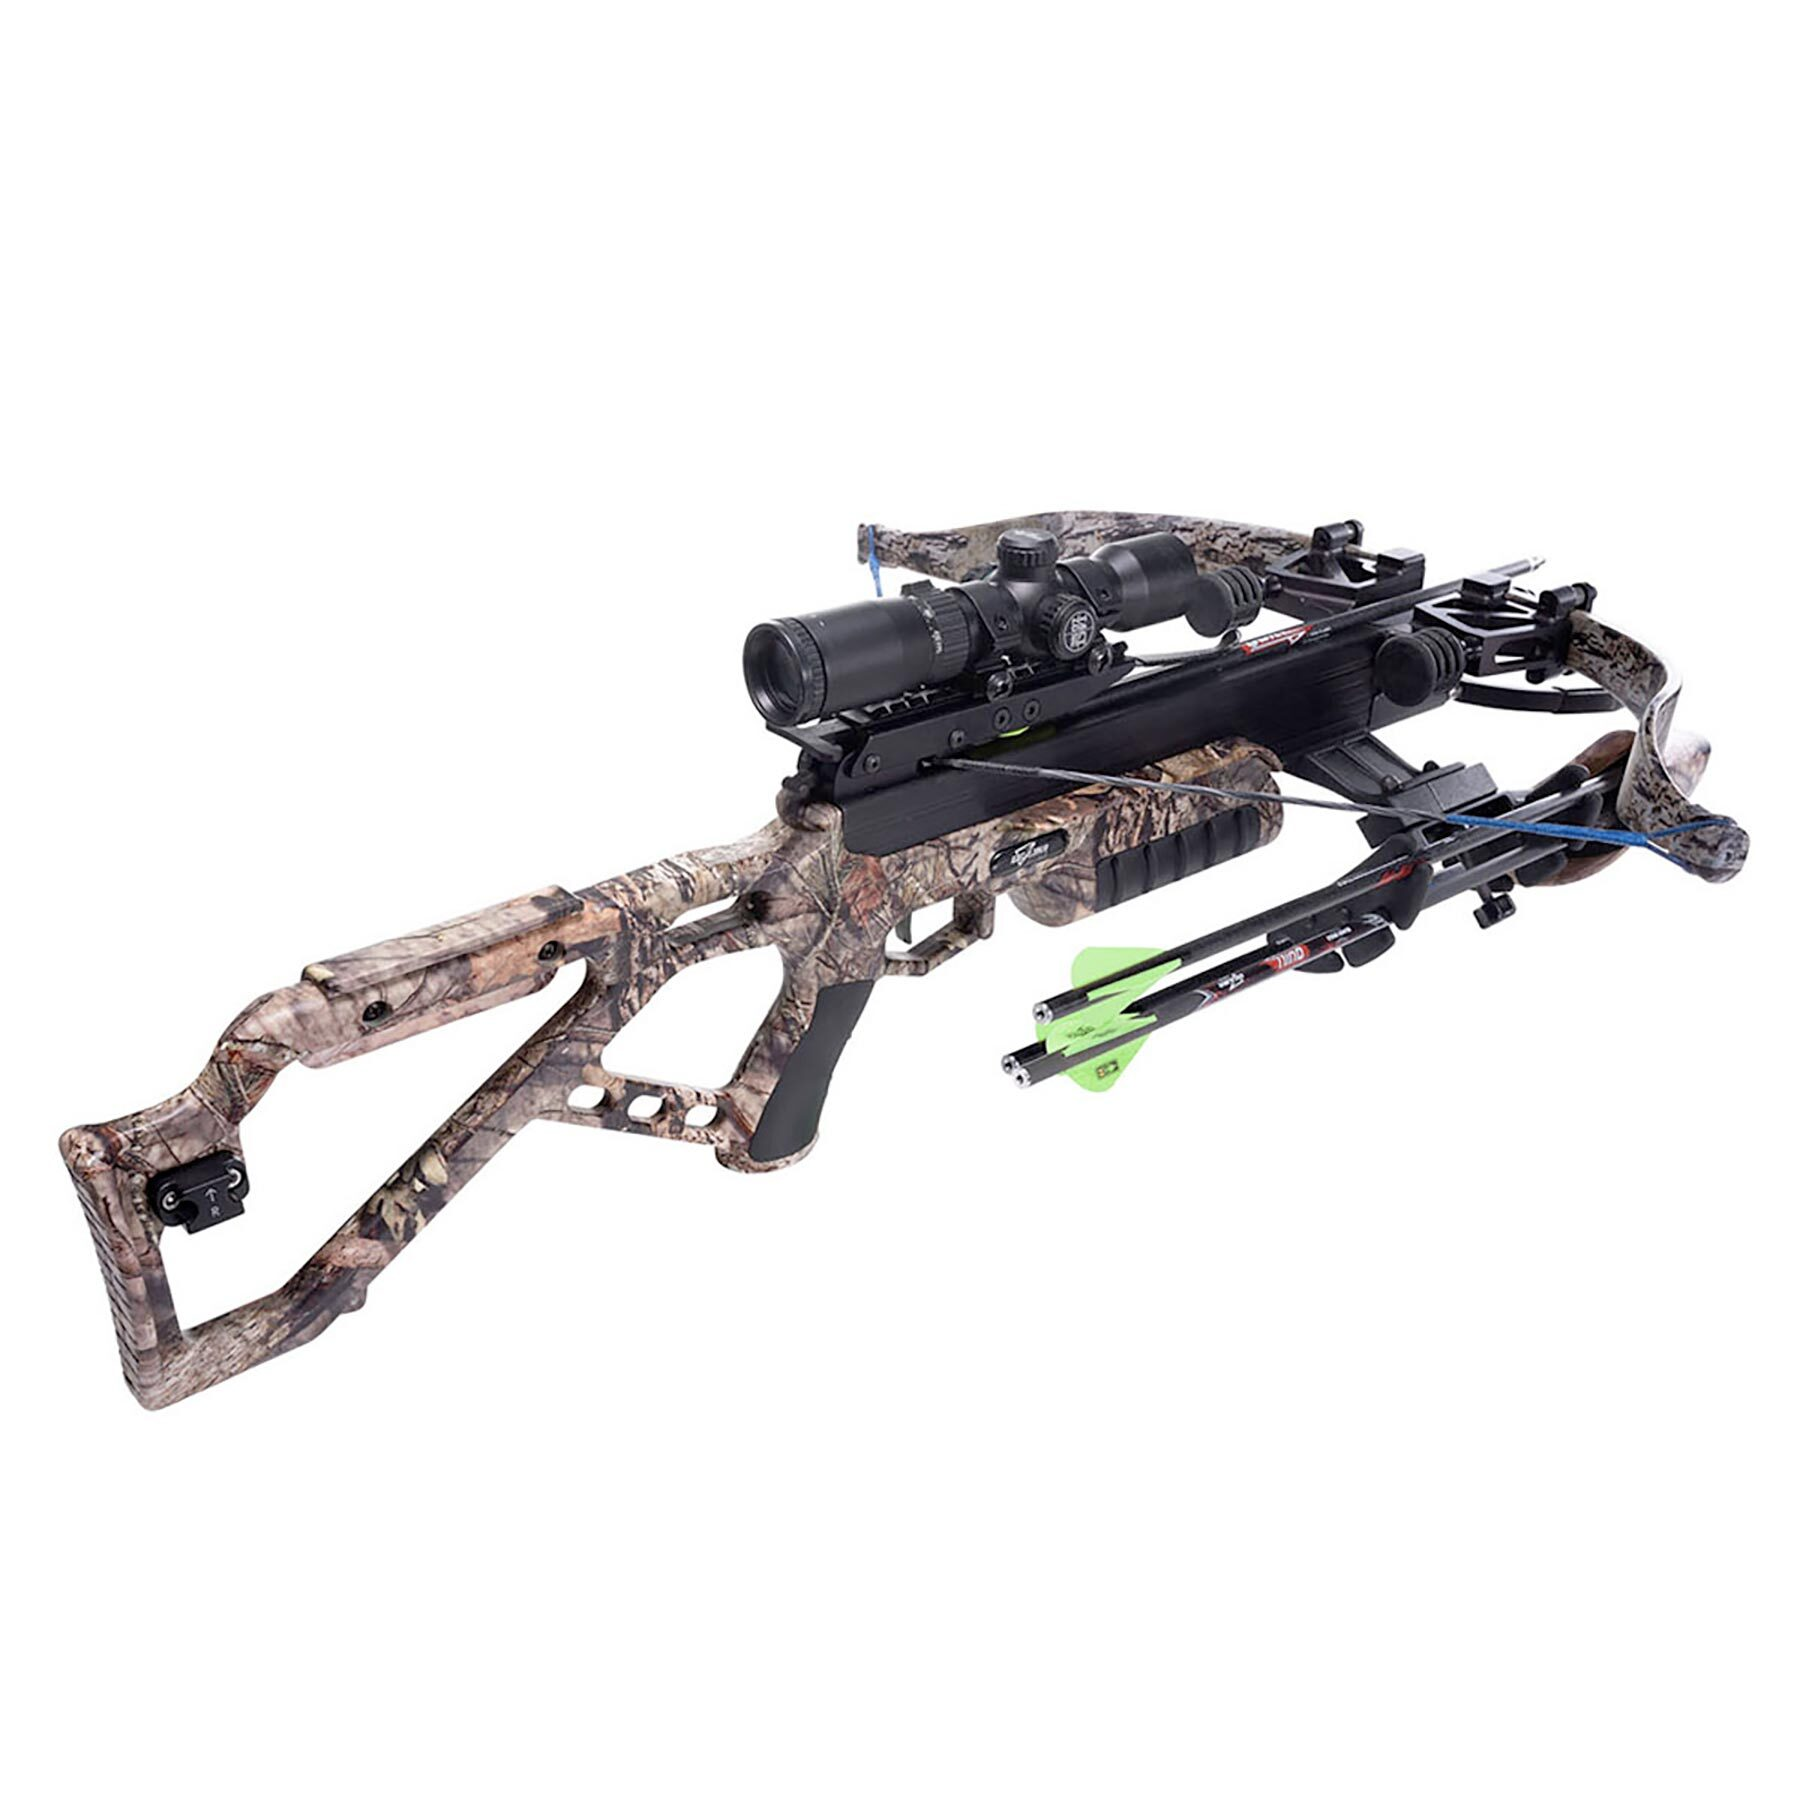 Micro 360 TD crossbow in Breakup Country camo